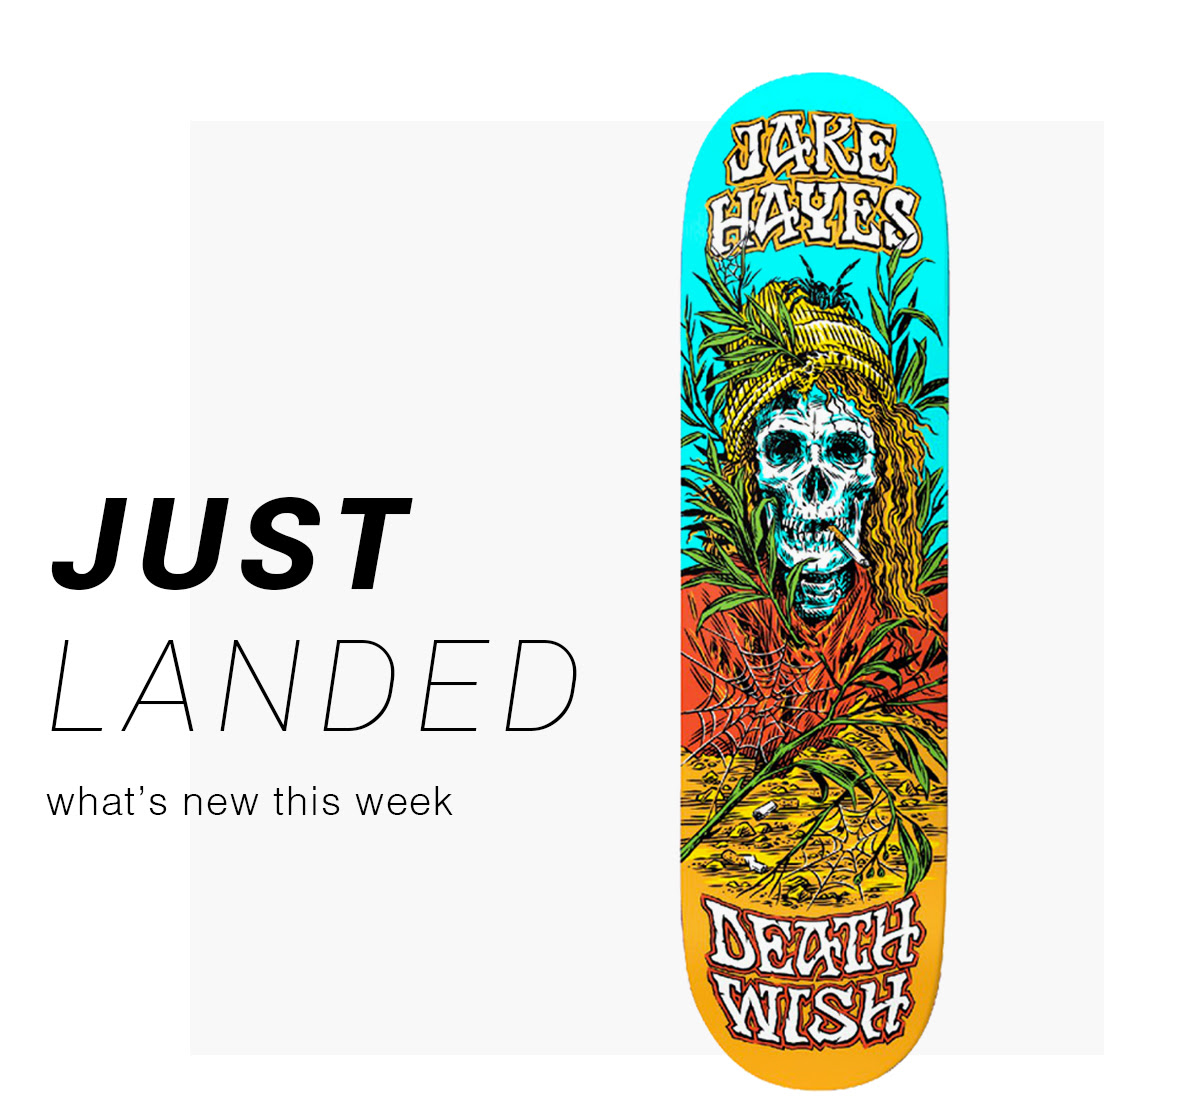 Just Landed: what's new this week